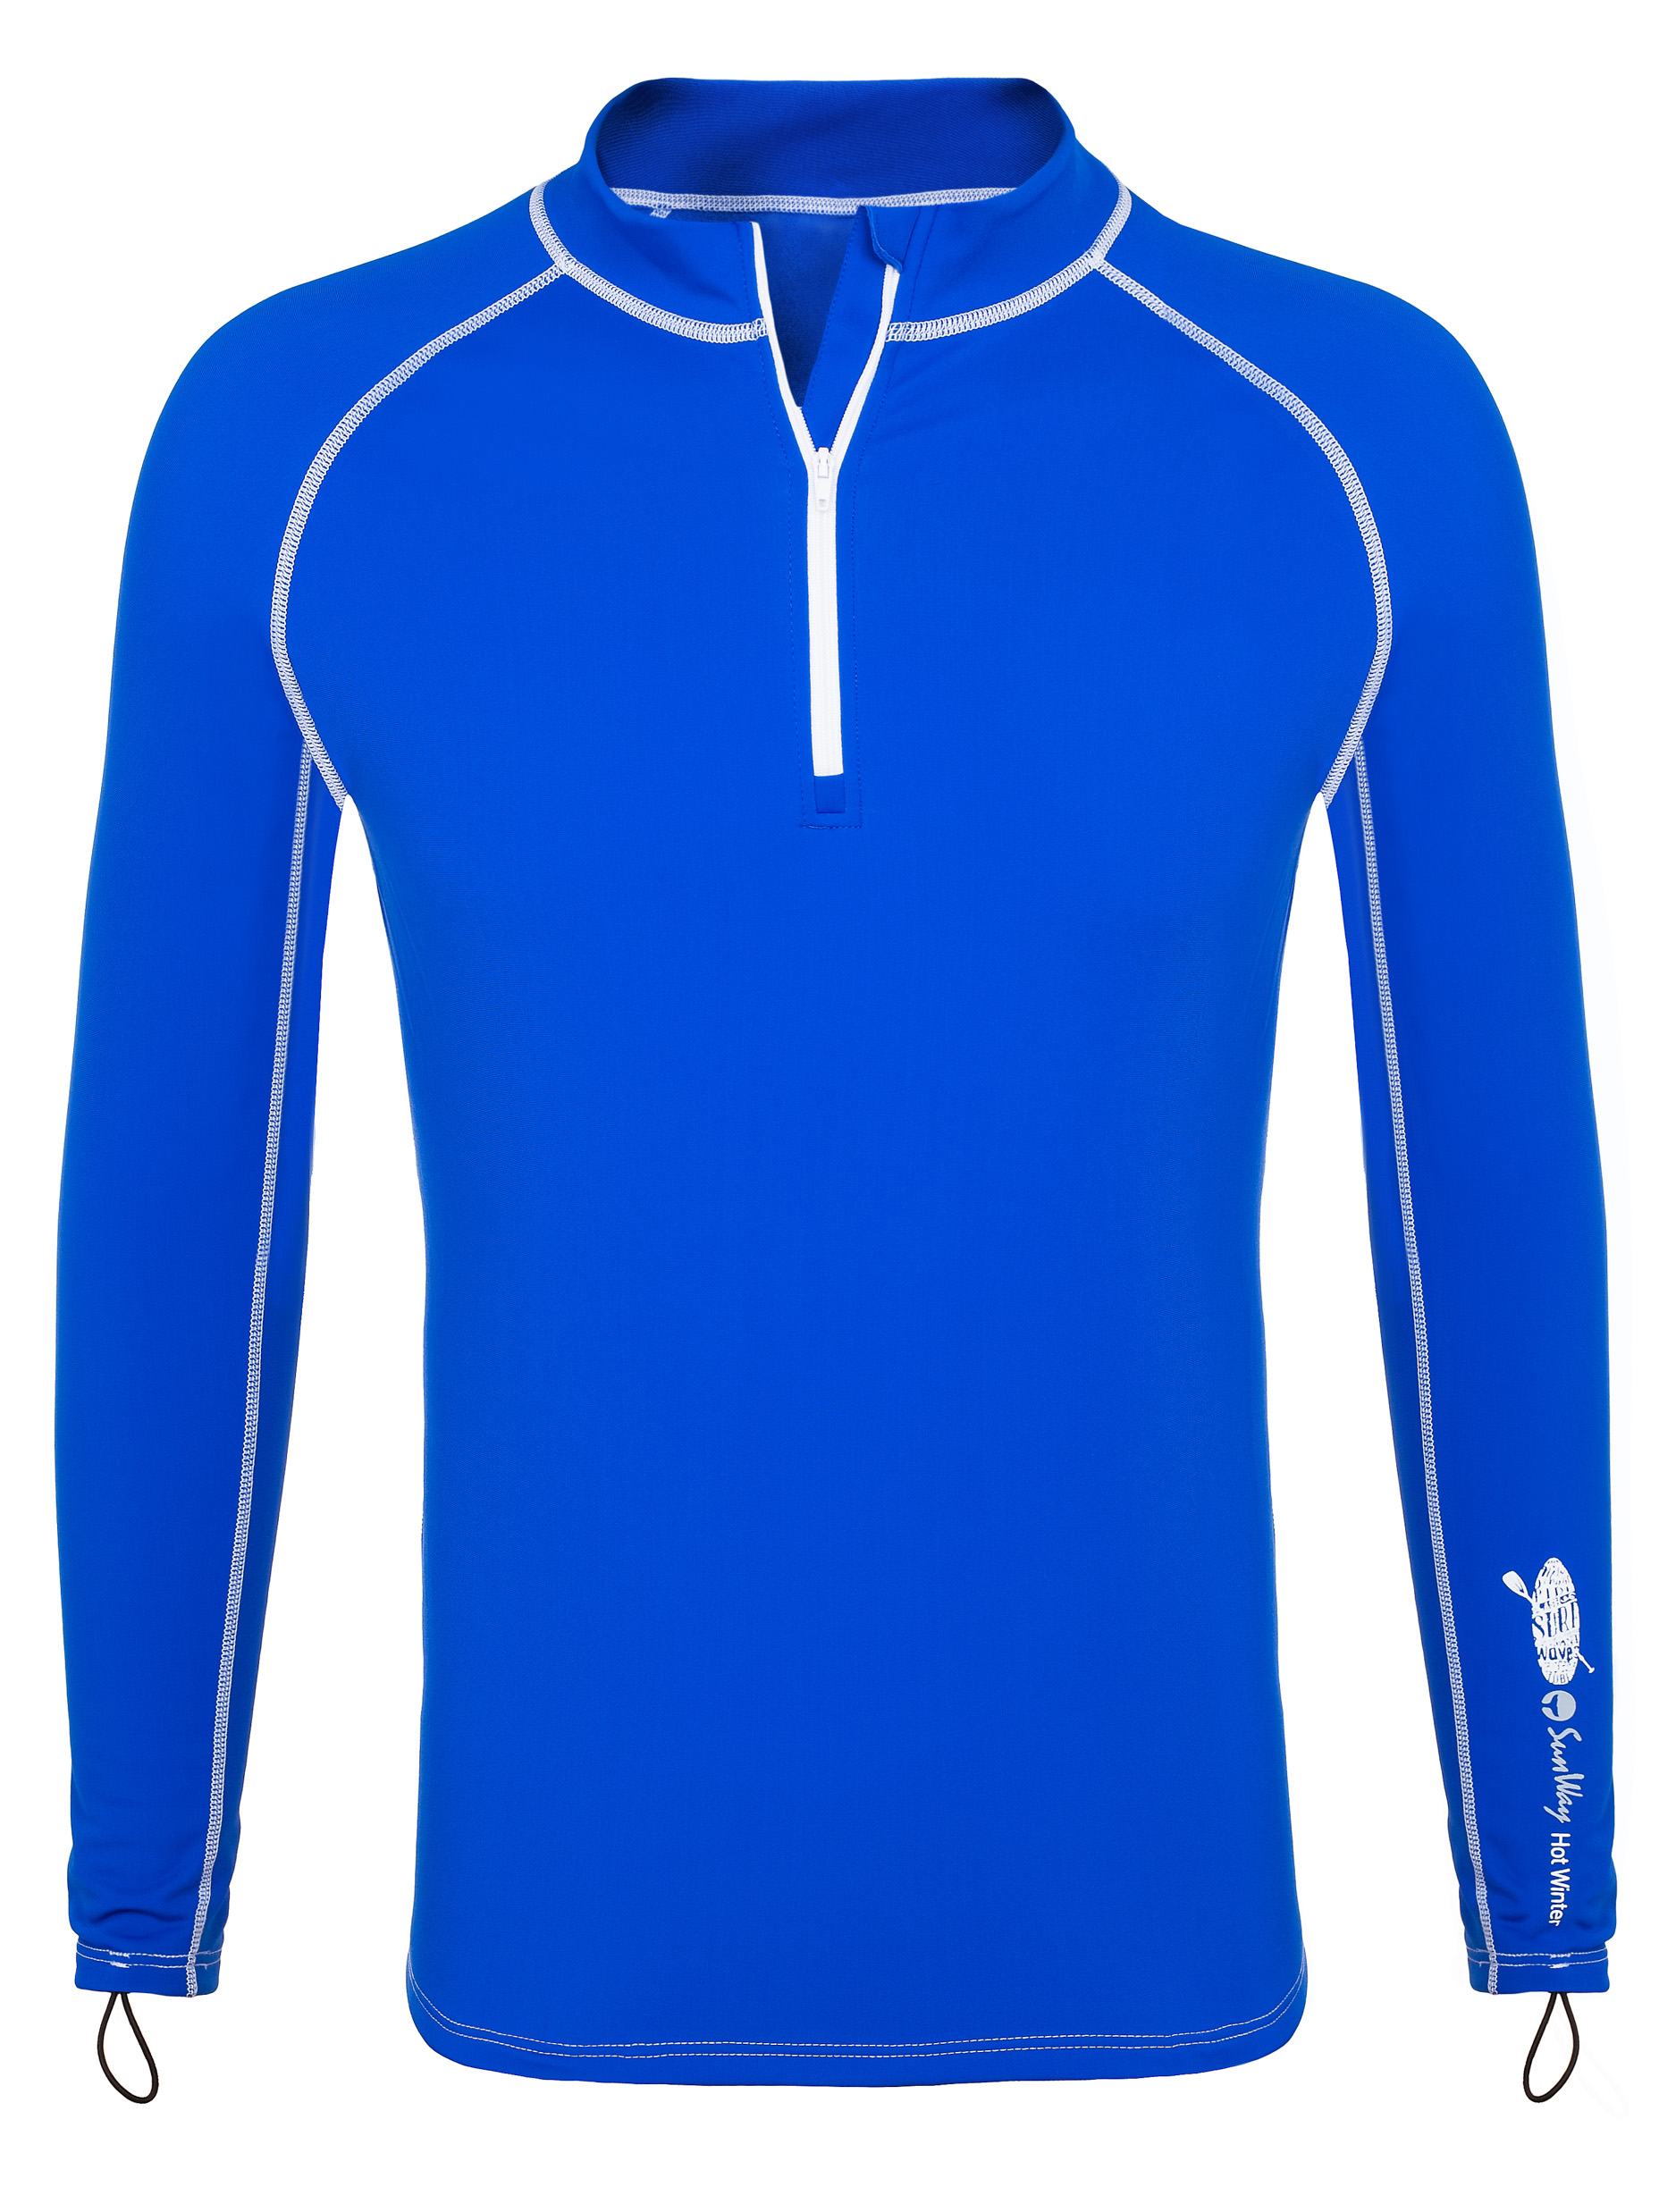 Clothing for cold water Paddling - Thermal Lycra Fleece